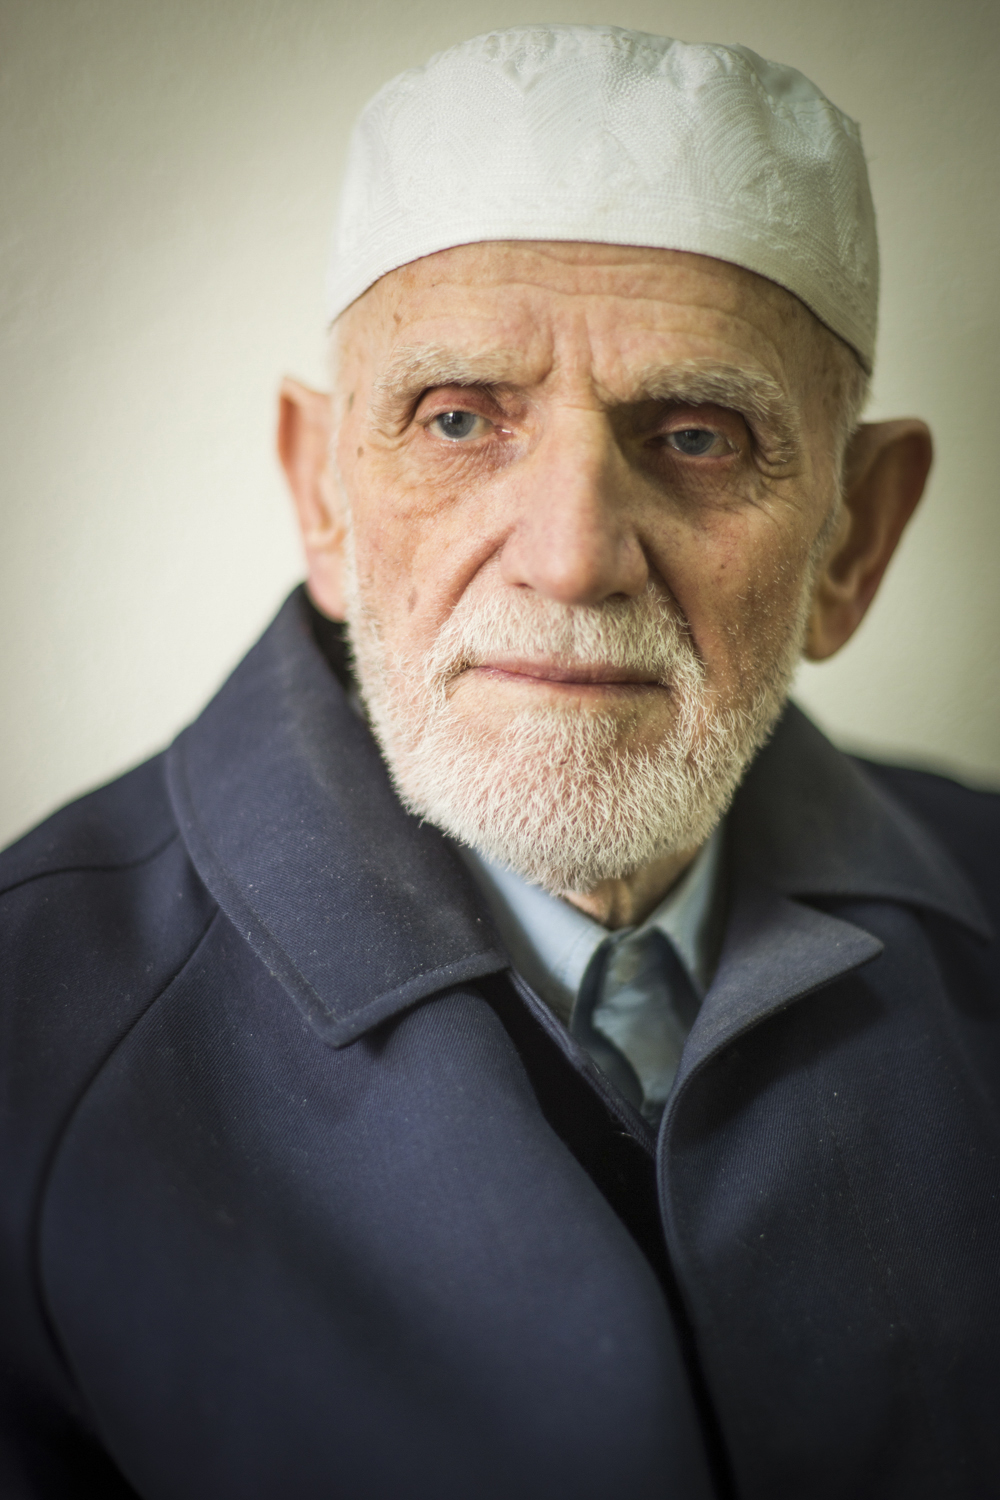 83 year oldMagjun Kuqi sitting in a tea house of one of Pristina's many Mosques. Shot with the A7ii and 85mm Ai-s at 1.4